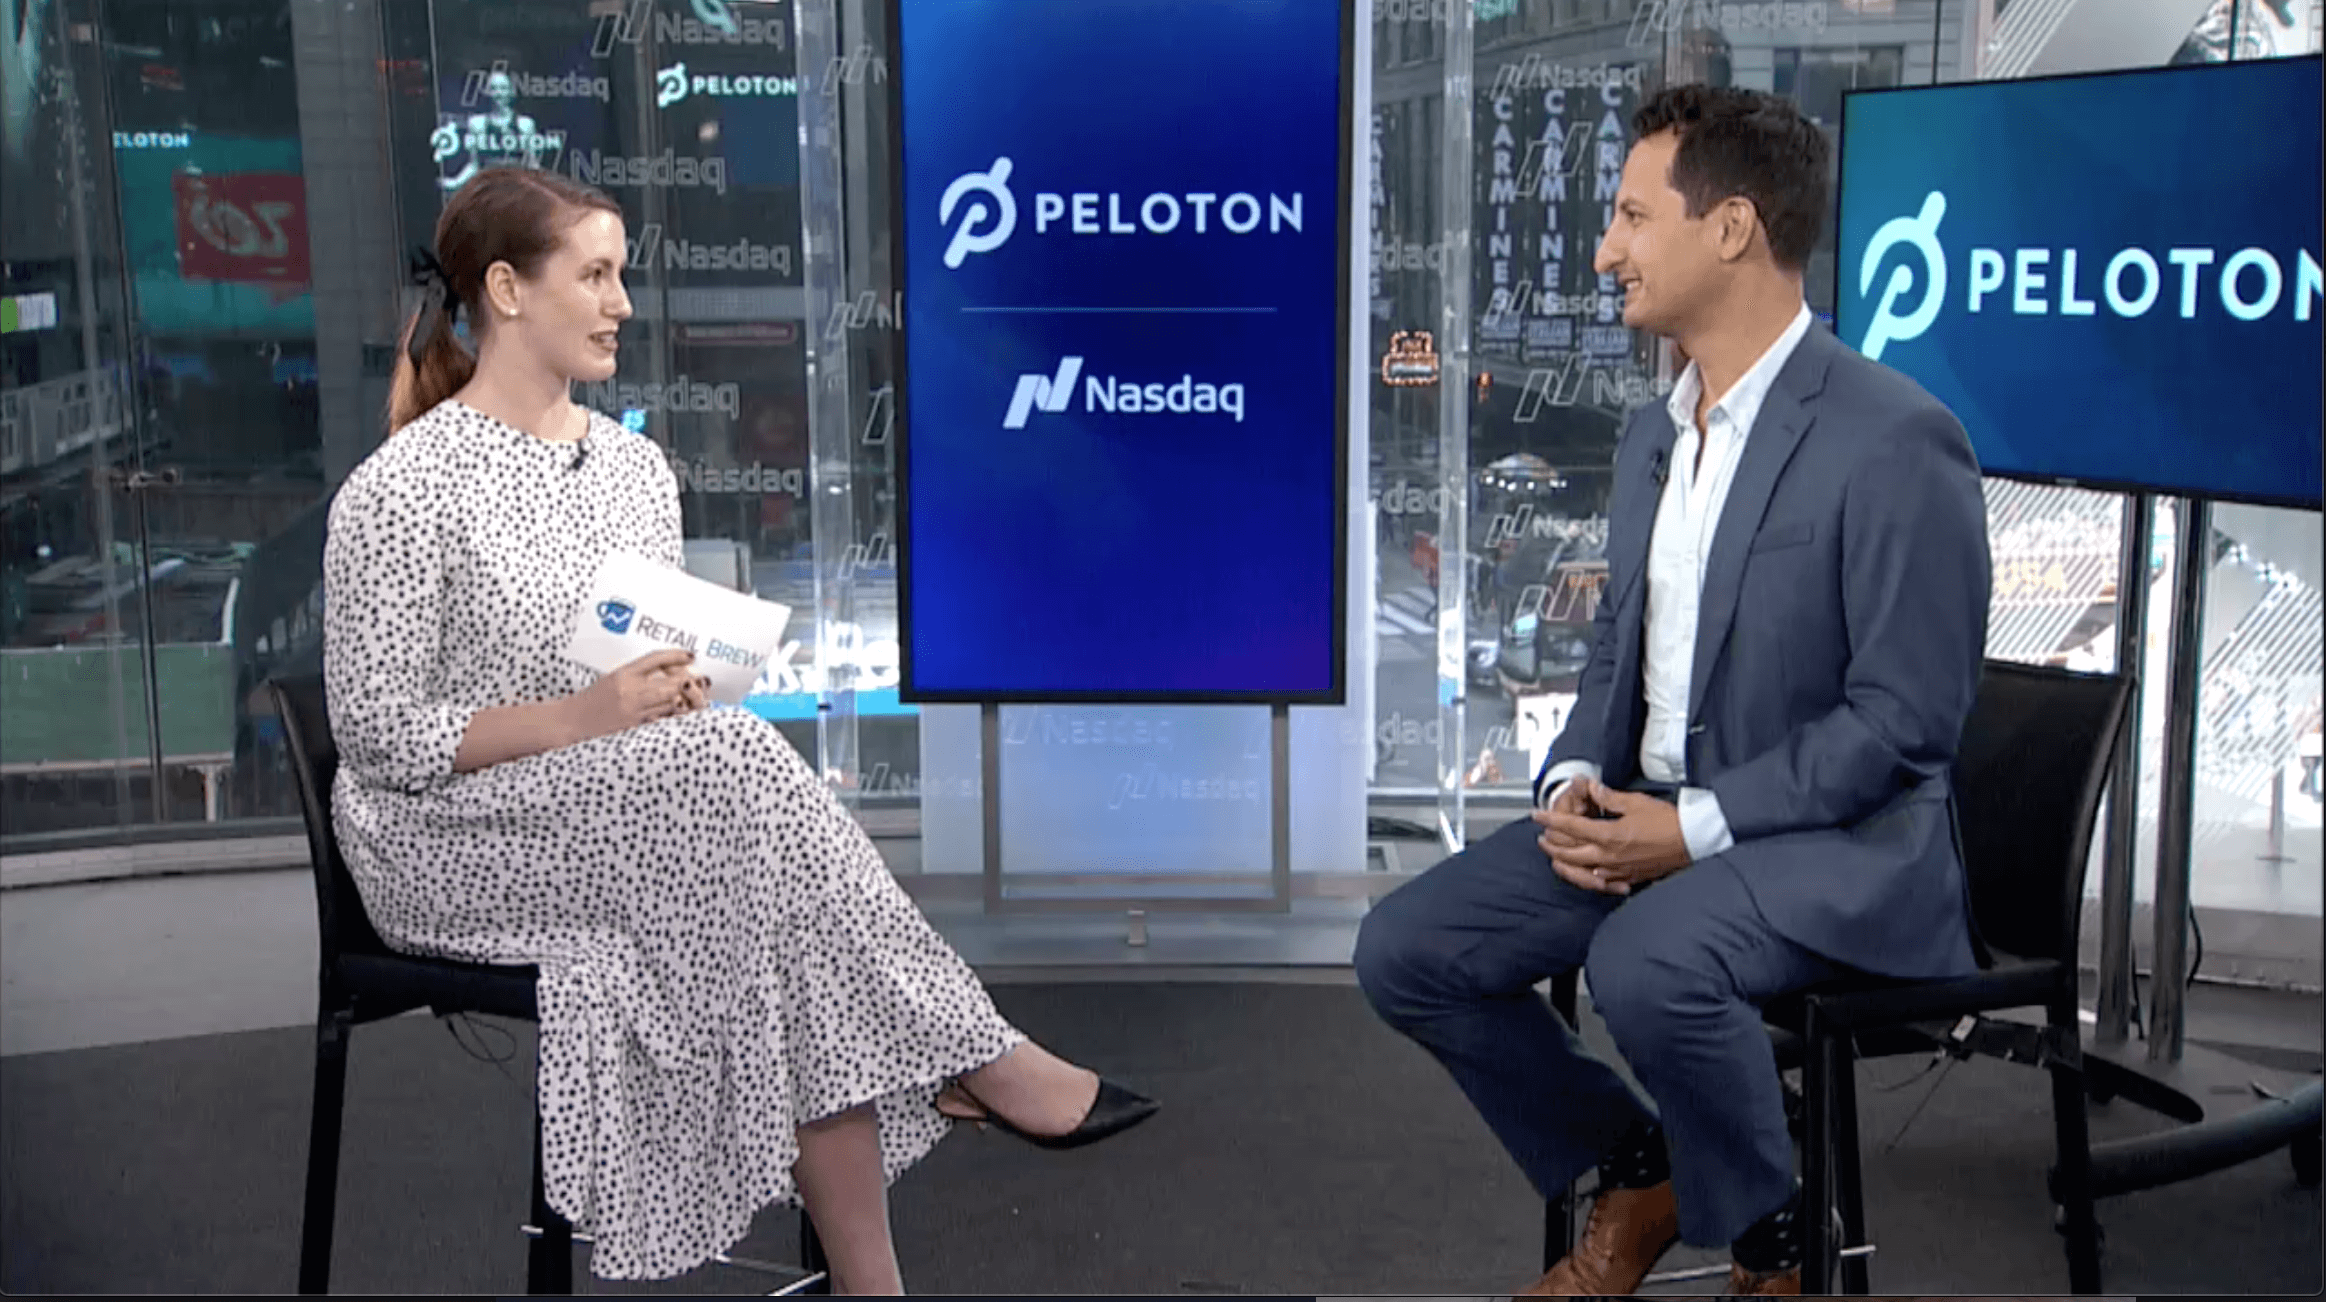 I sat down with Peloton's Co-founder and COO for some insight on its post-IPO plans. Left: yours truly. Right: Peloton Co-founder and COO Tom Cortese.